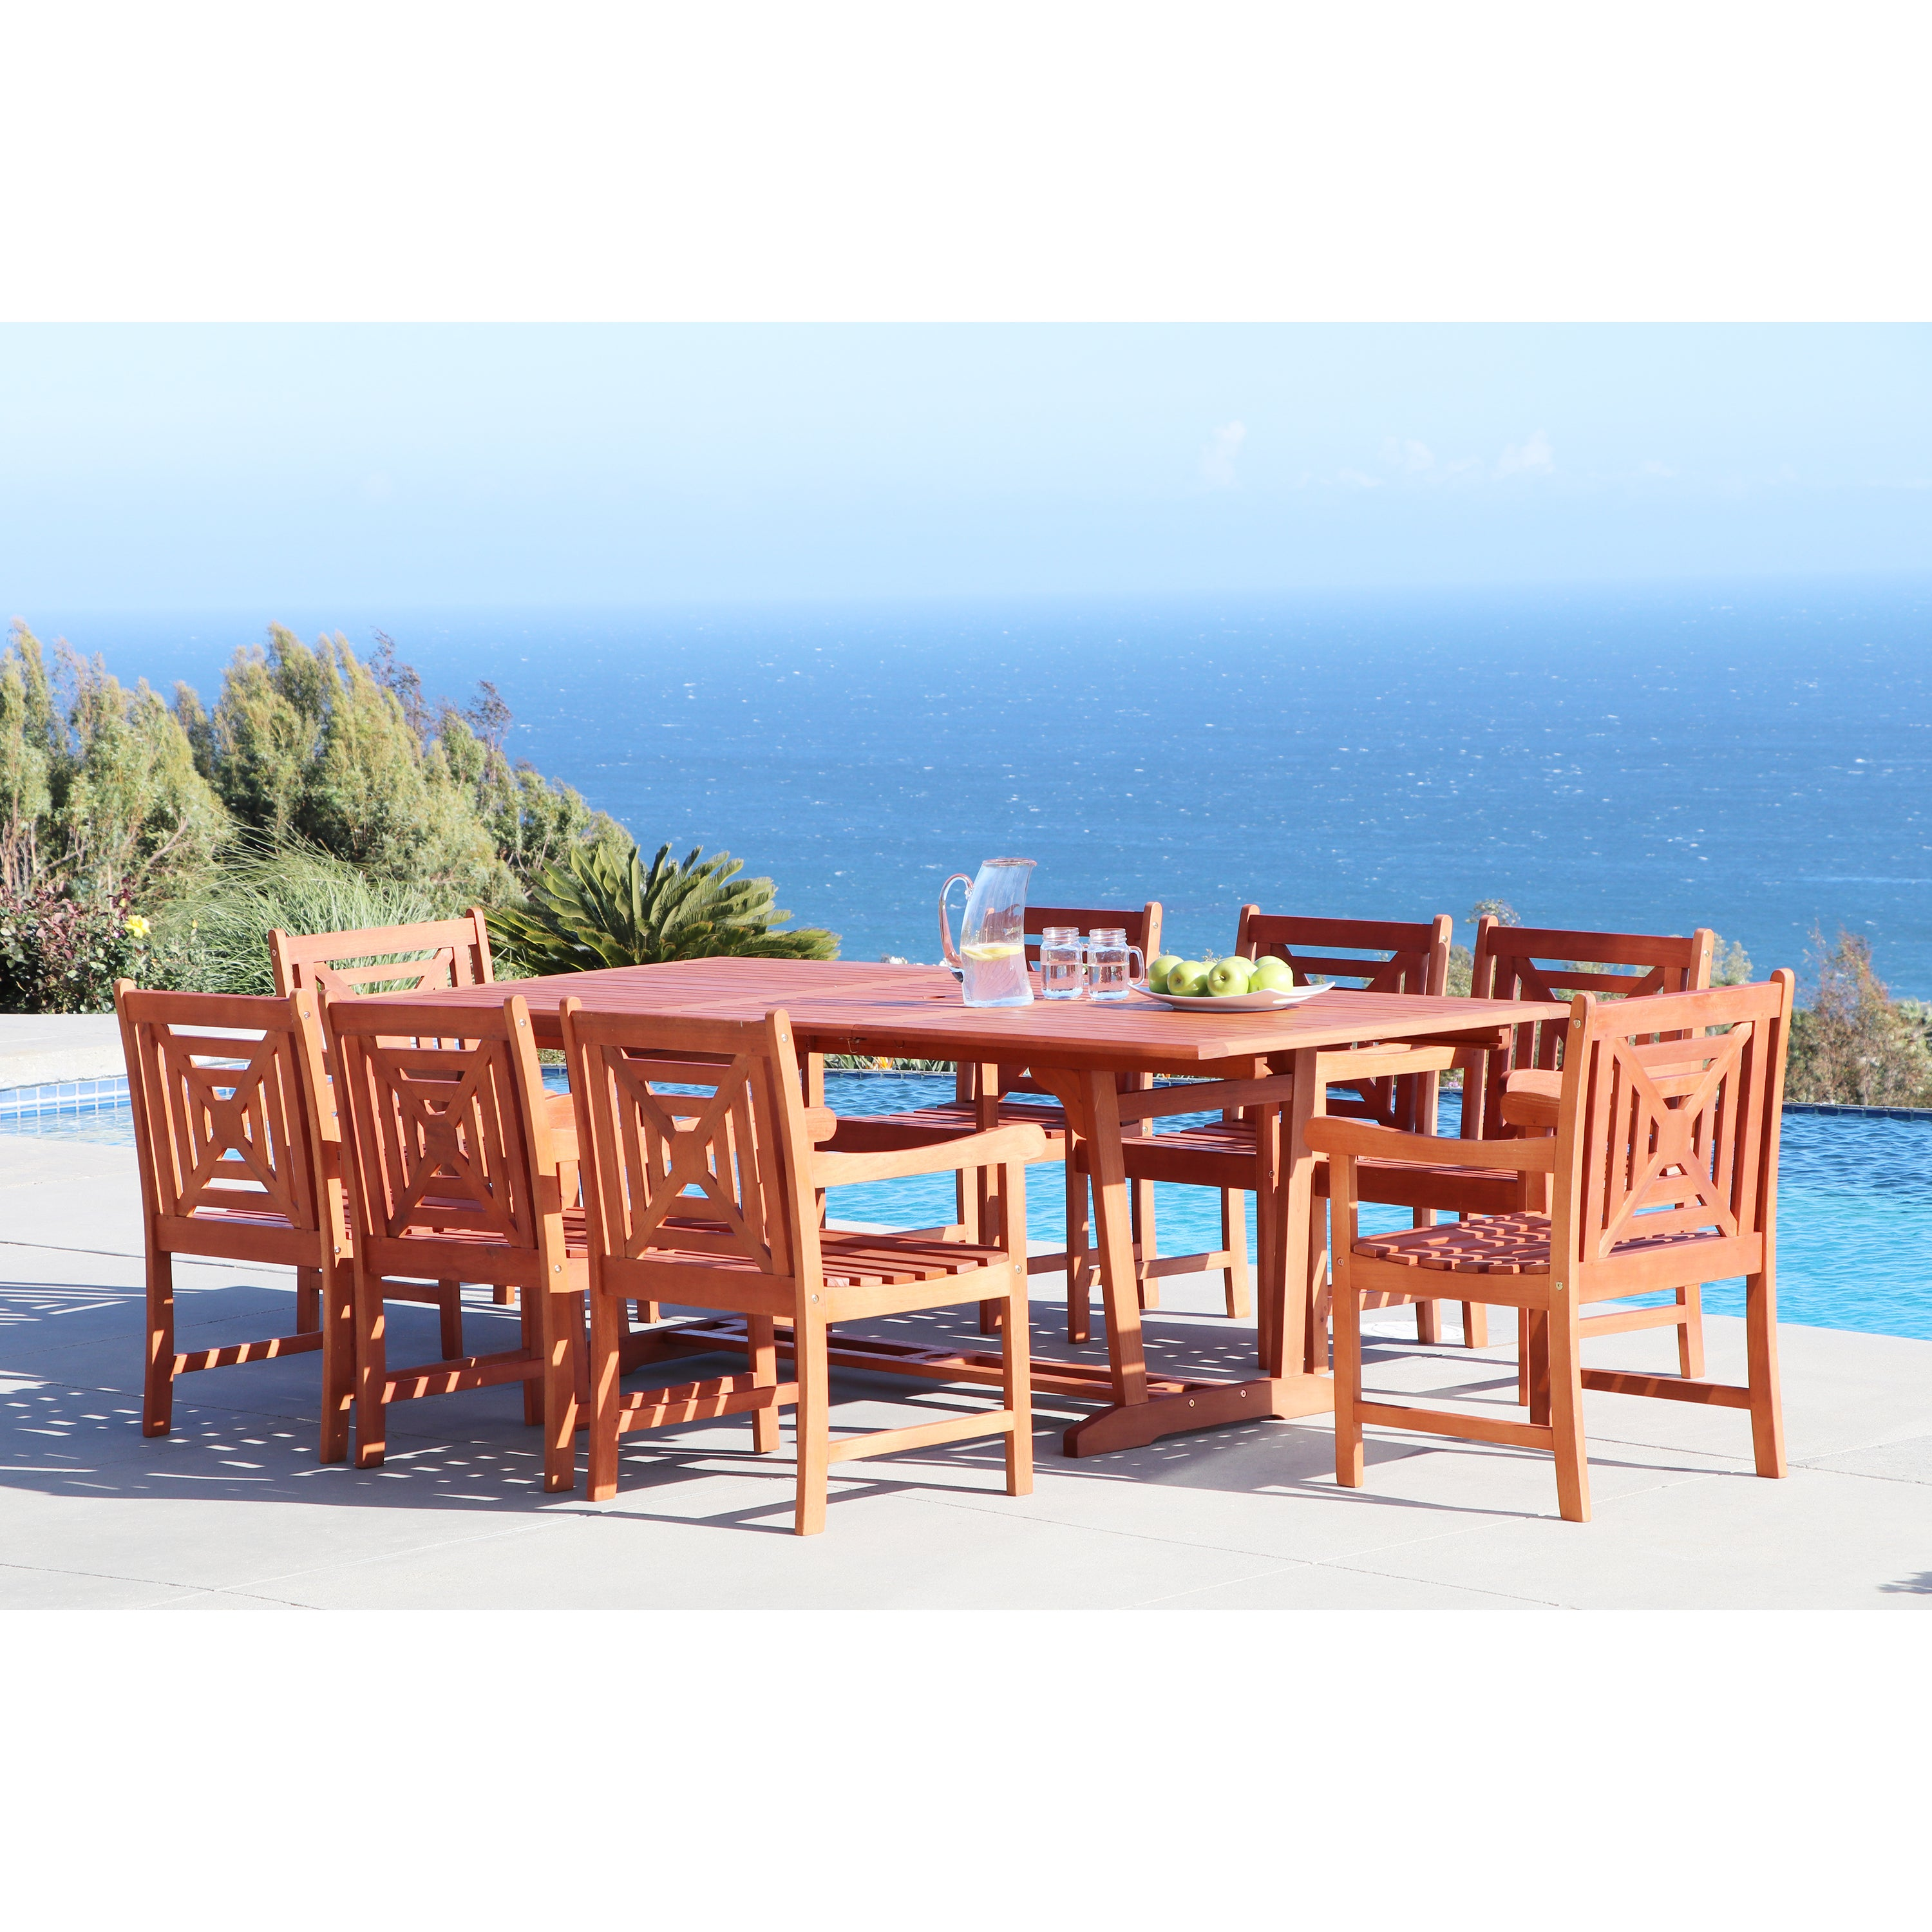 Havenside Home Surfside Eco-friendly 9-piece Outdoor Hardwood Dining Set with Rectangle extension Table and Arm Chairs (Natural Wood)